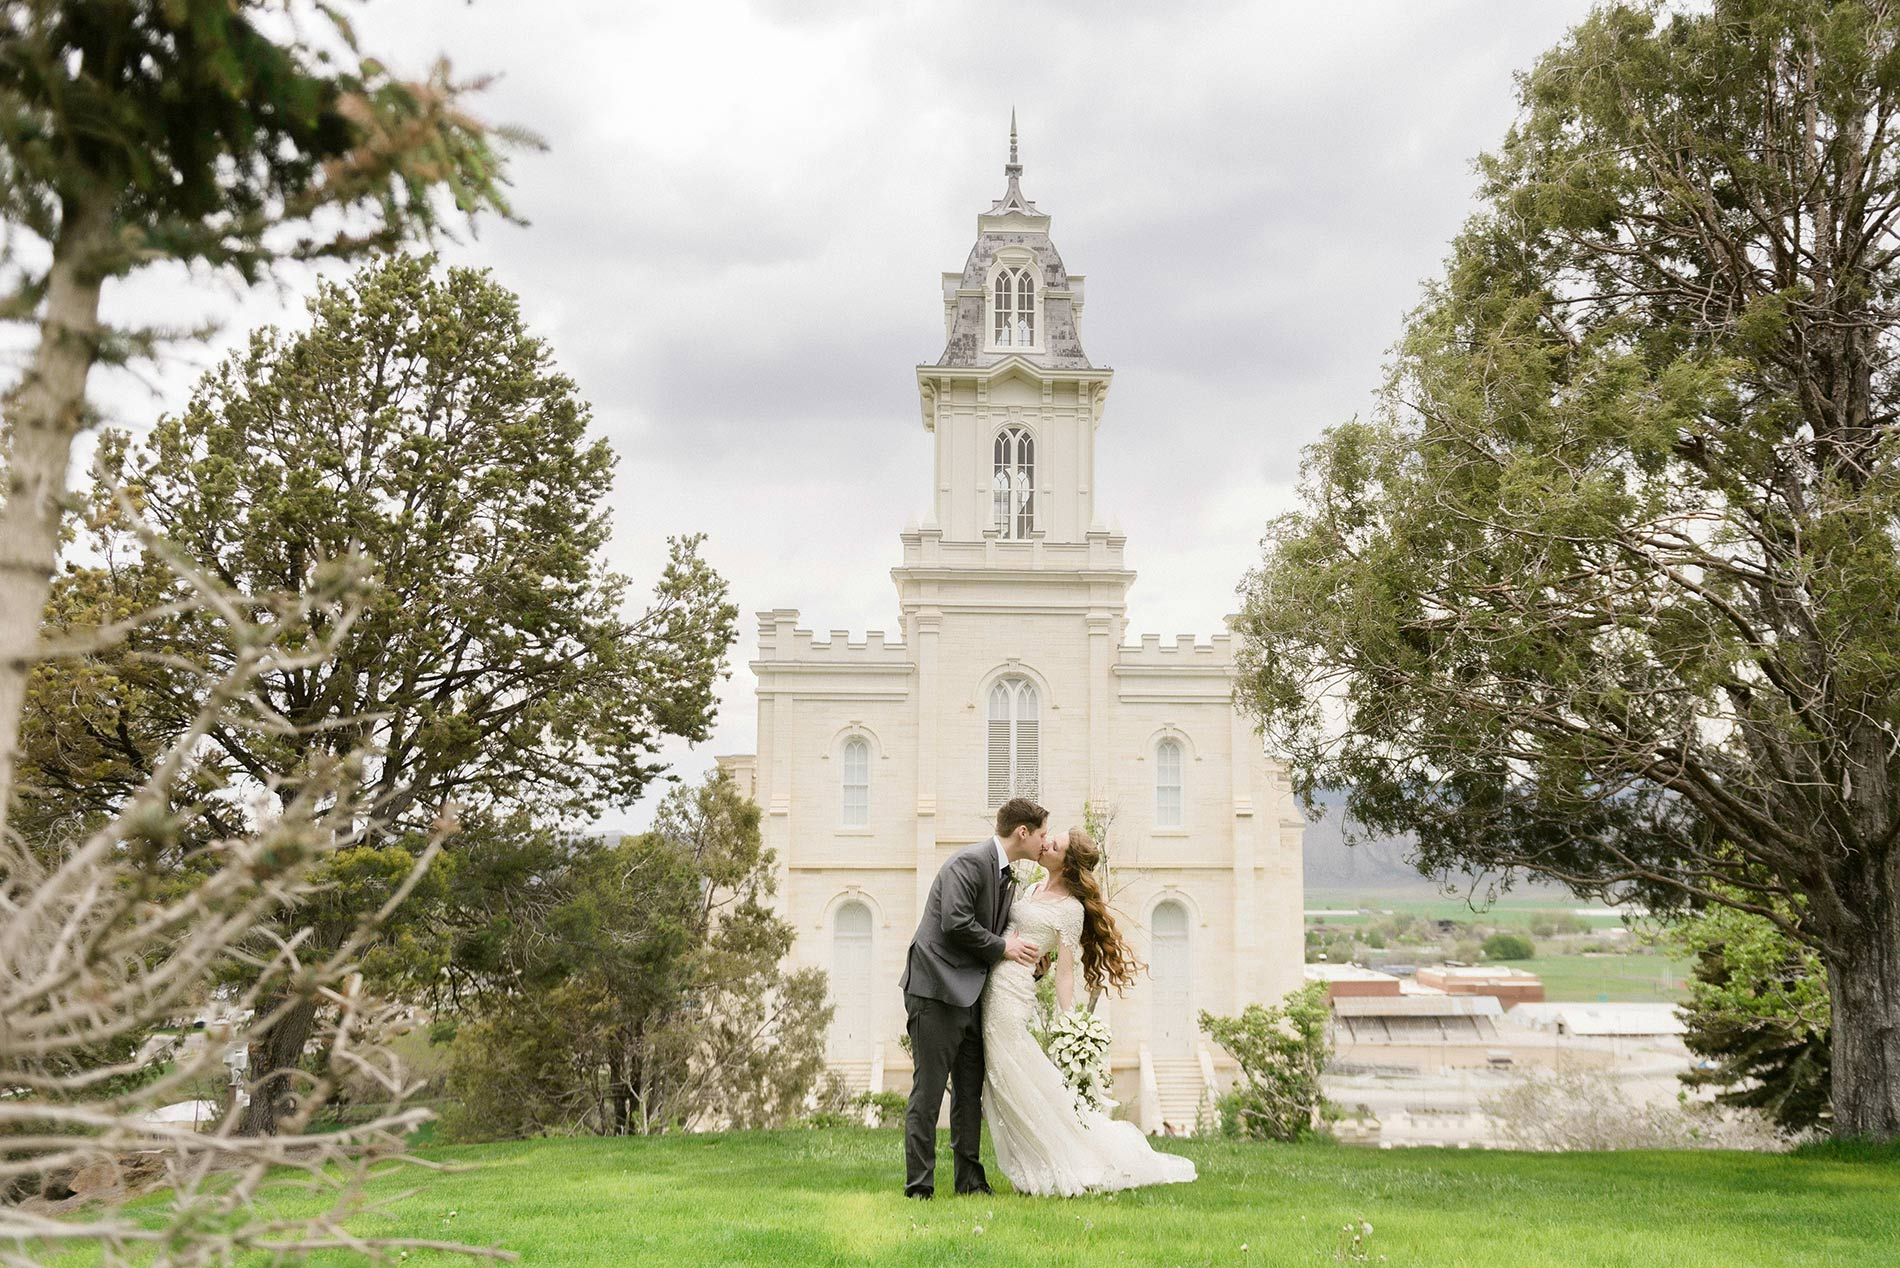 A bride and groom kissing on the East side of the Manti temple for Manti temple wedding photography.